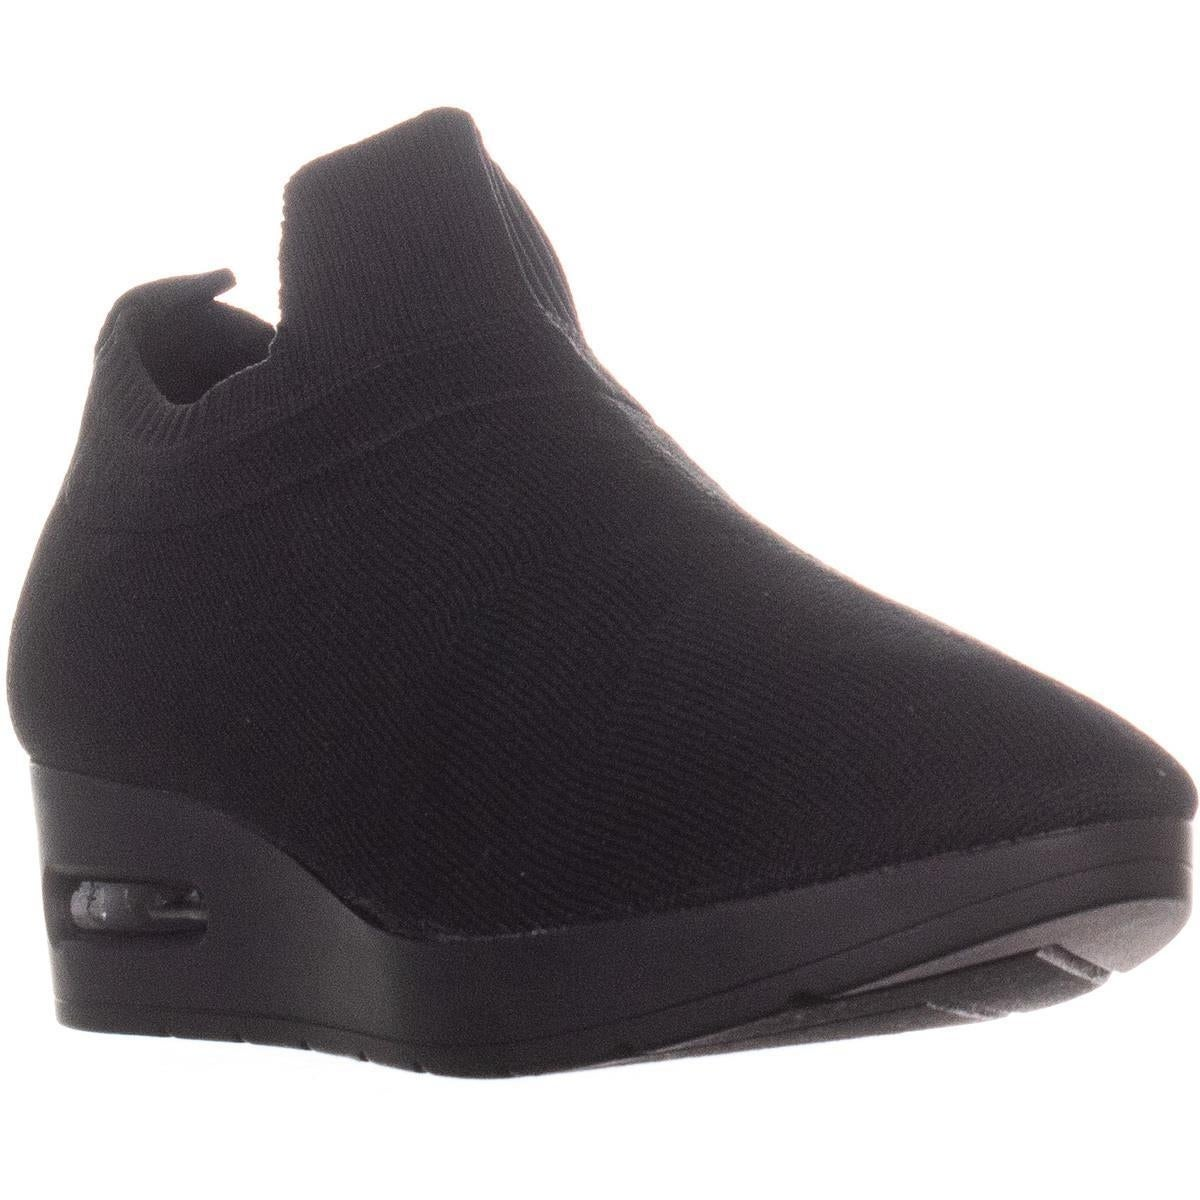 Shop DKNY Angie Slip-On Wedge Sneakers